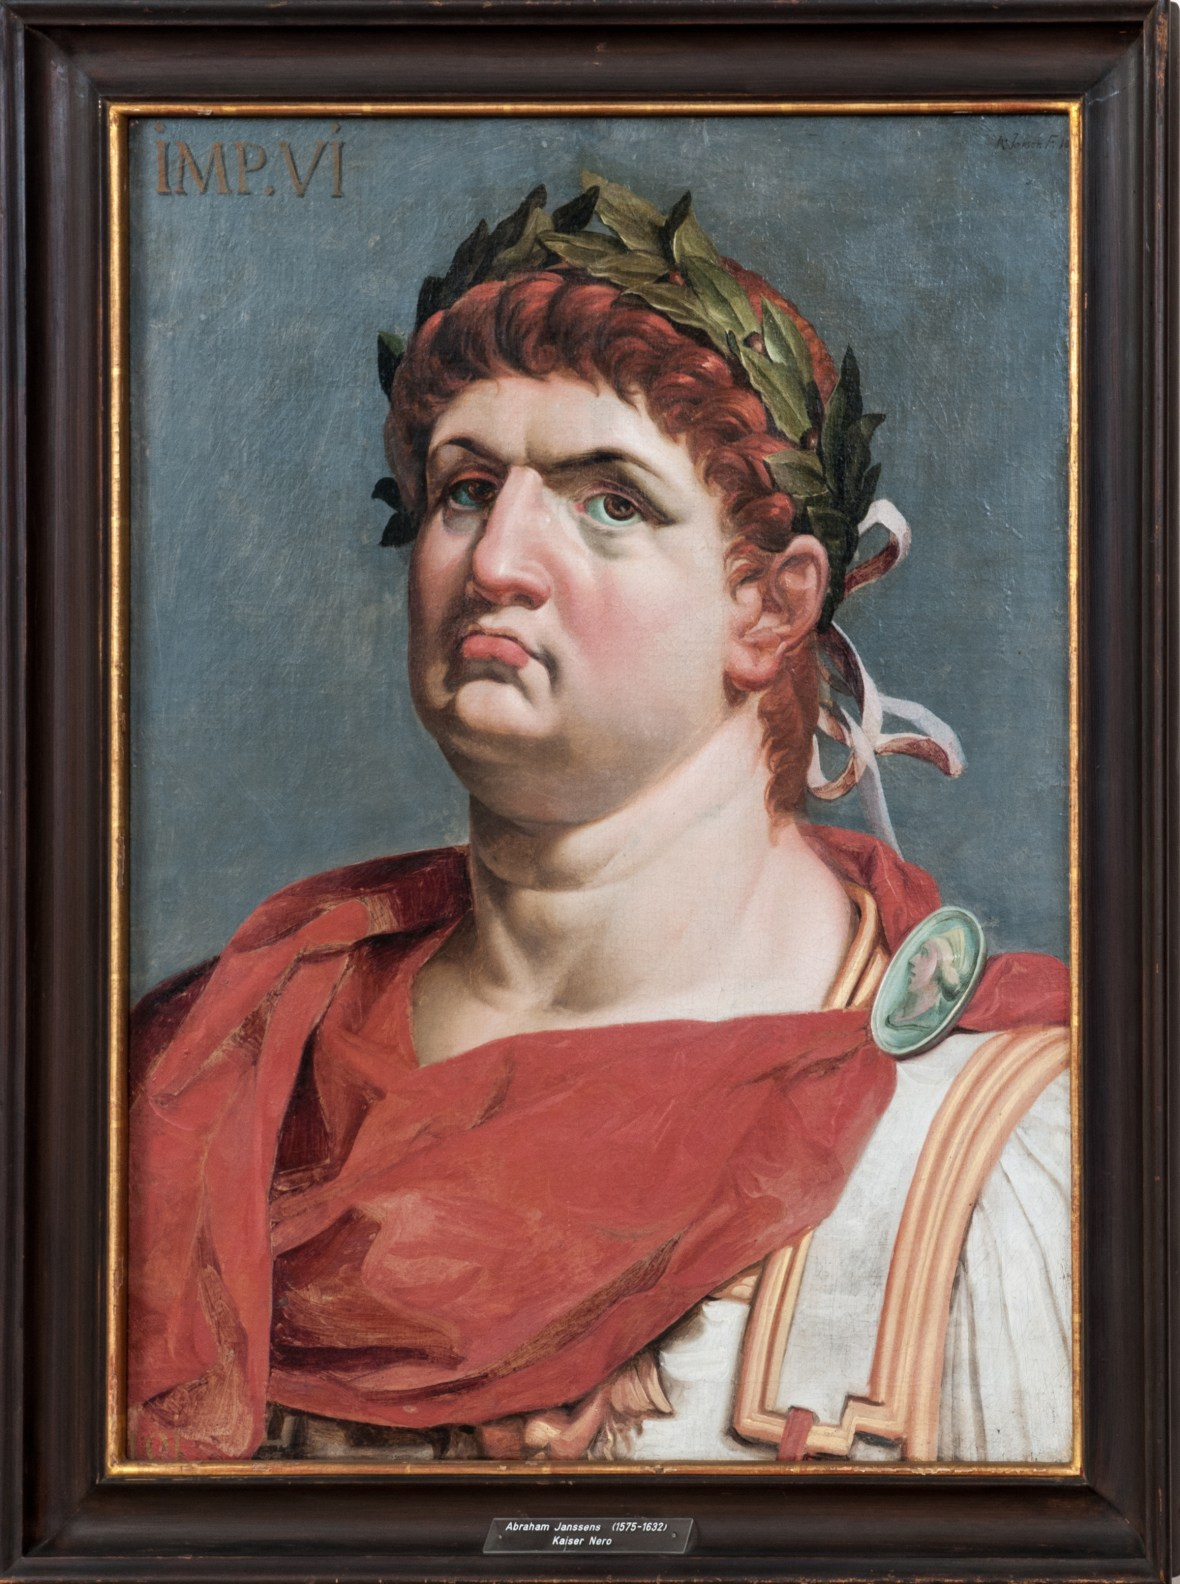 Mythbusting Ancient Rome – the emperor Nero